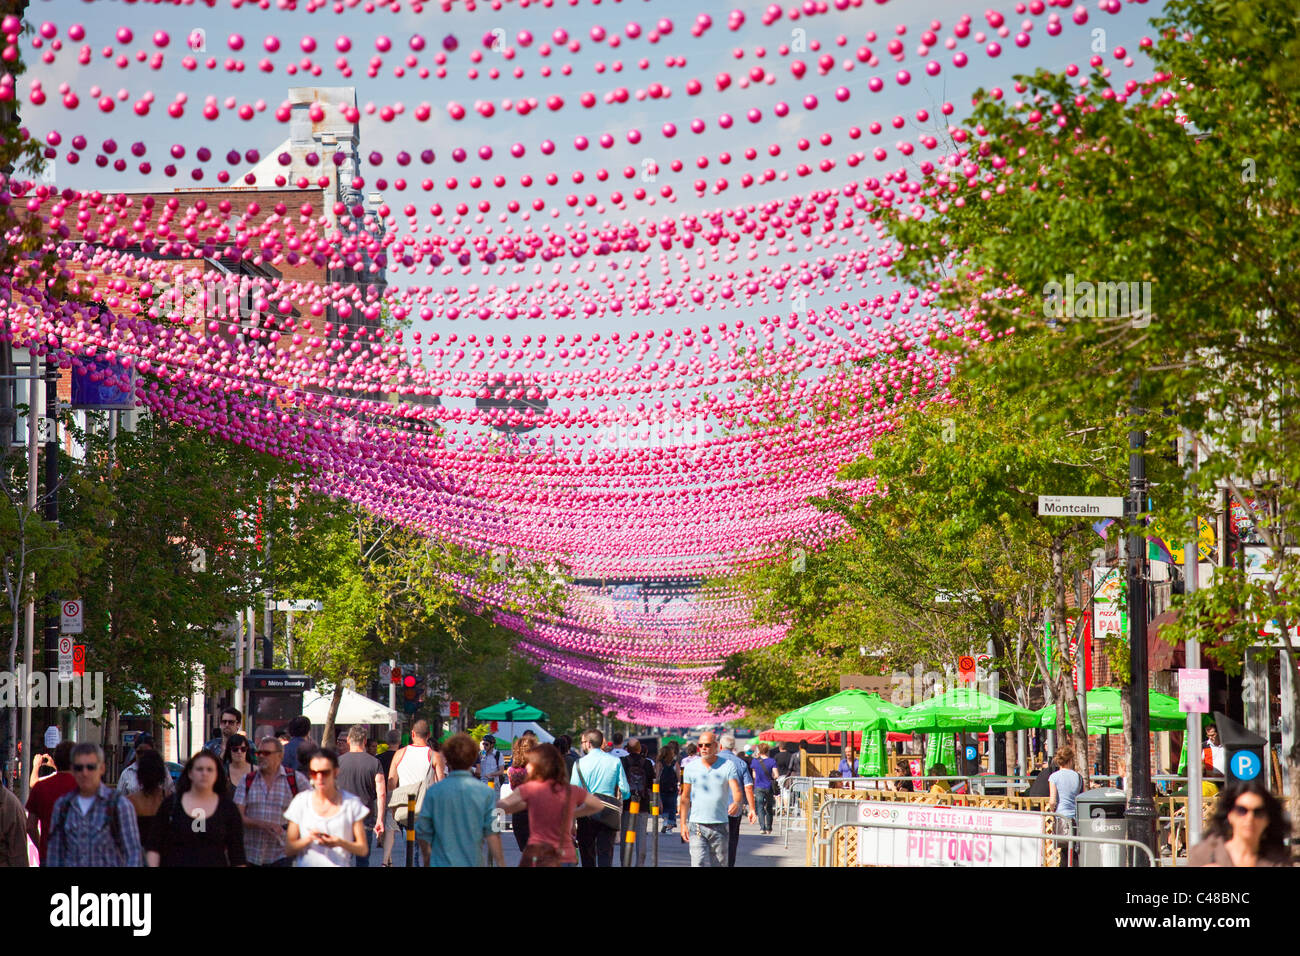 Boules rose décorant le Village gai ou le village, quartier gay de Montréal, Canada Photo Stock